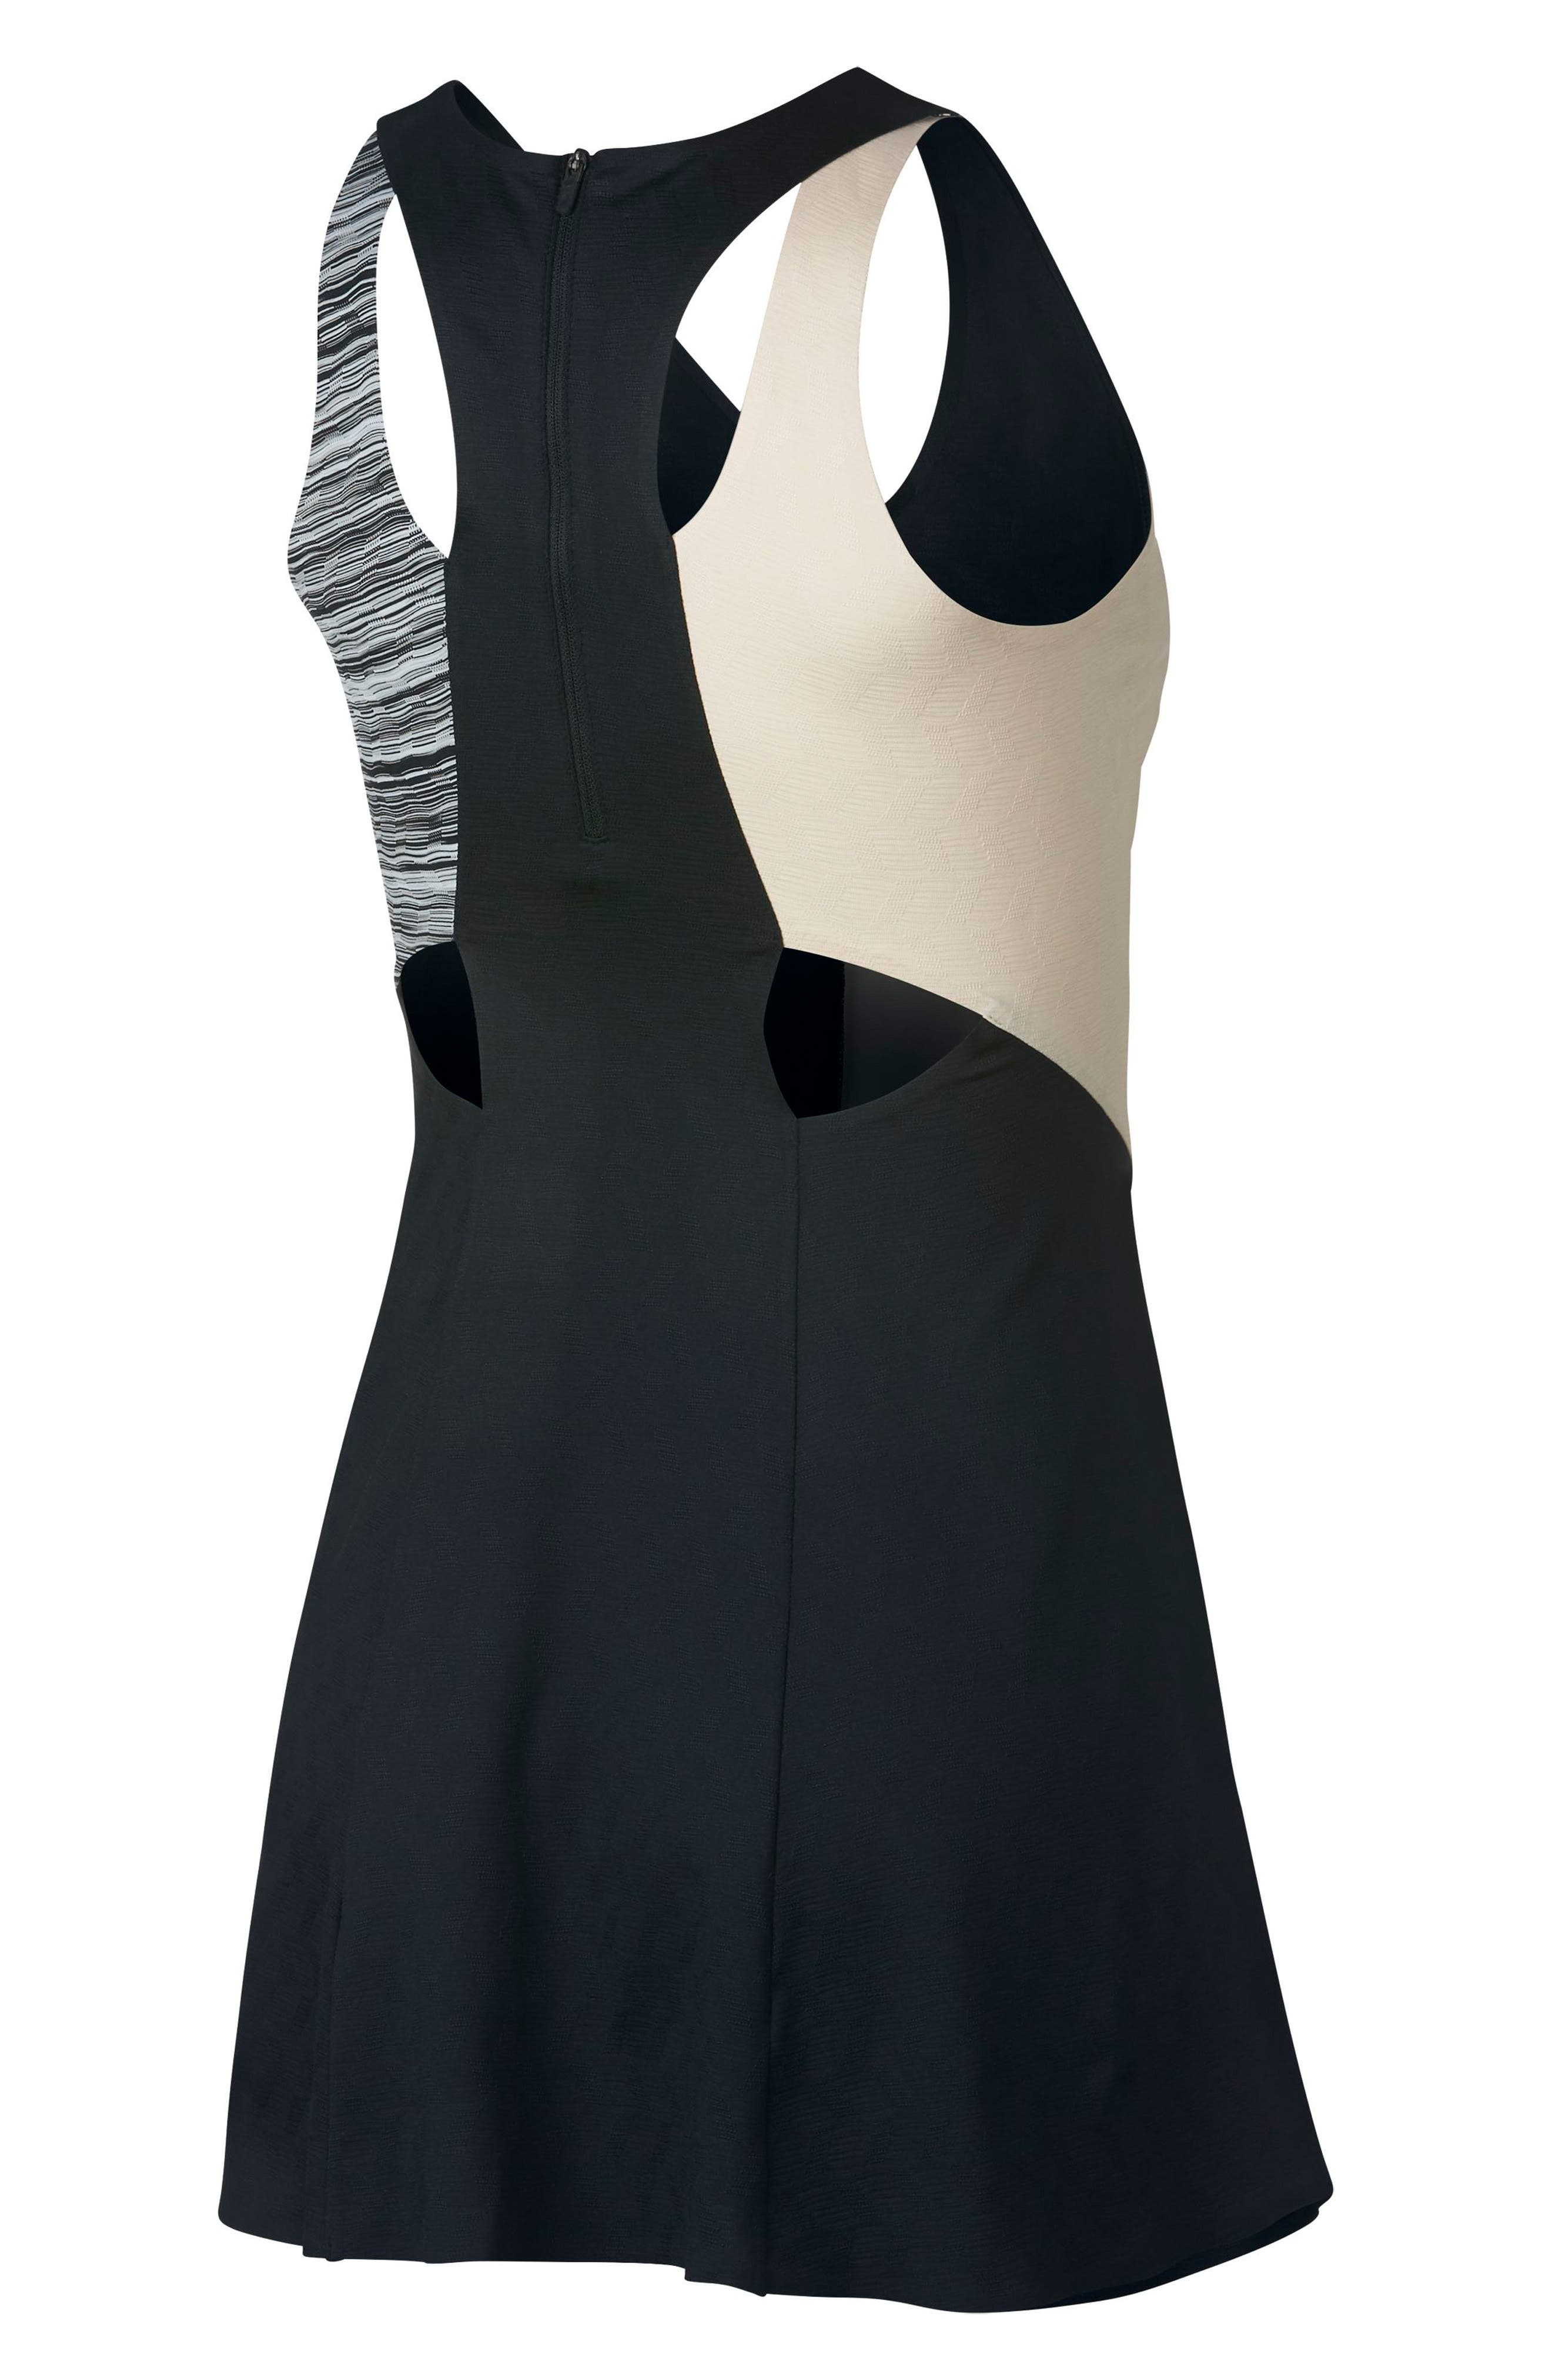 Maria Dry Tennis Dress,                             Alternate thumbnail 2, color,                             BLACK/ WOLF GREY/ GUAVA ICE